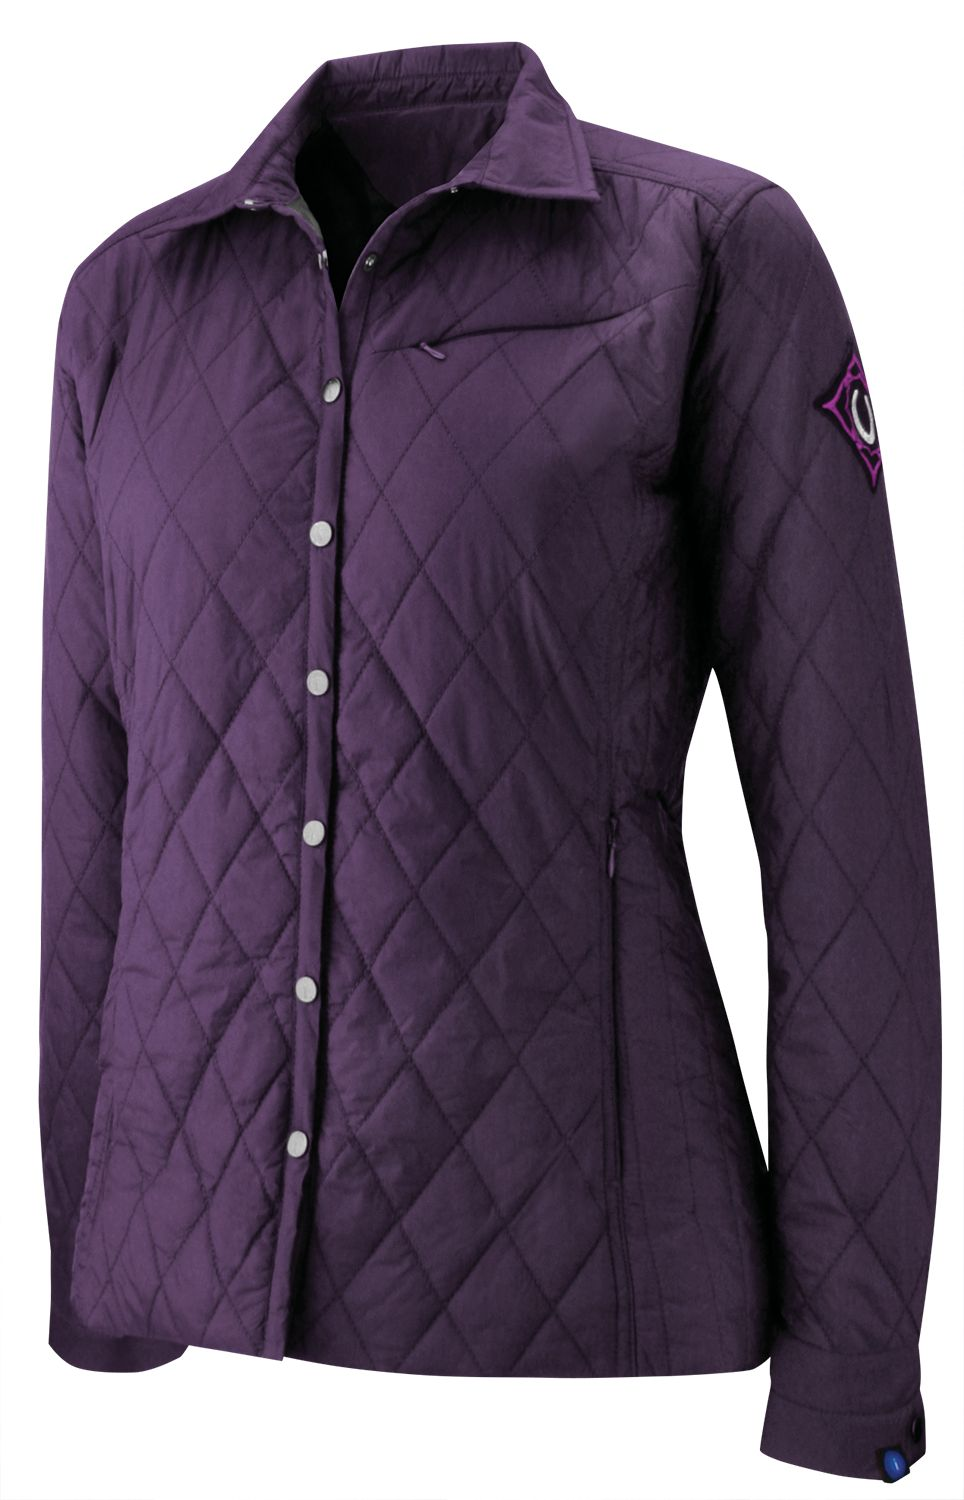 Irideon Morgan Insulated Jacket - Ladies